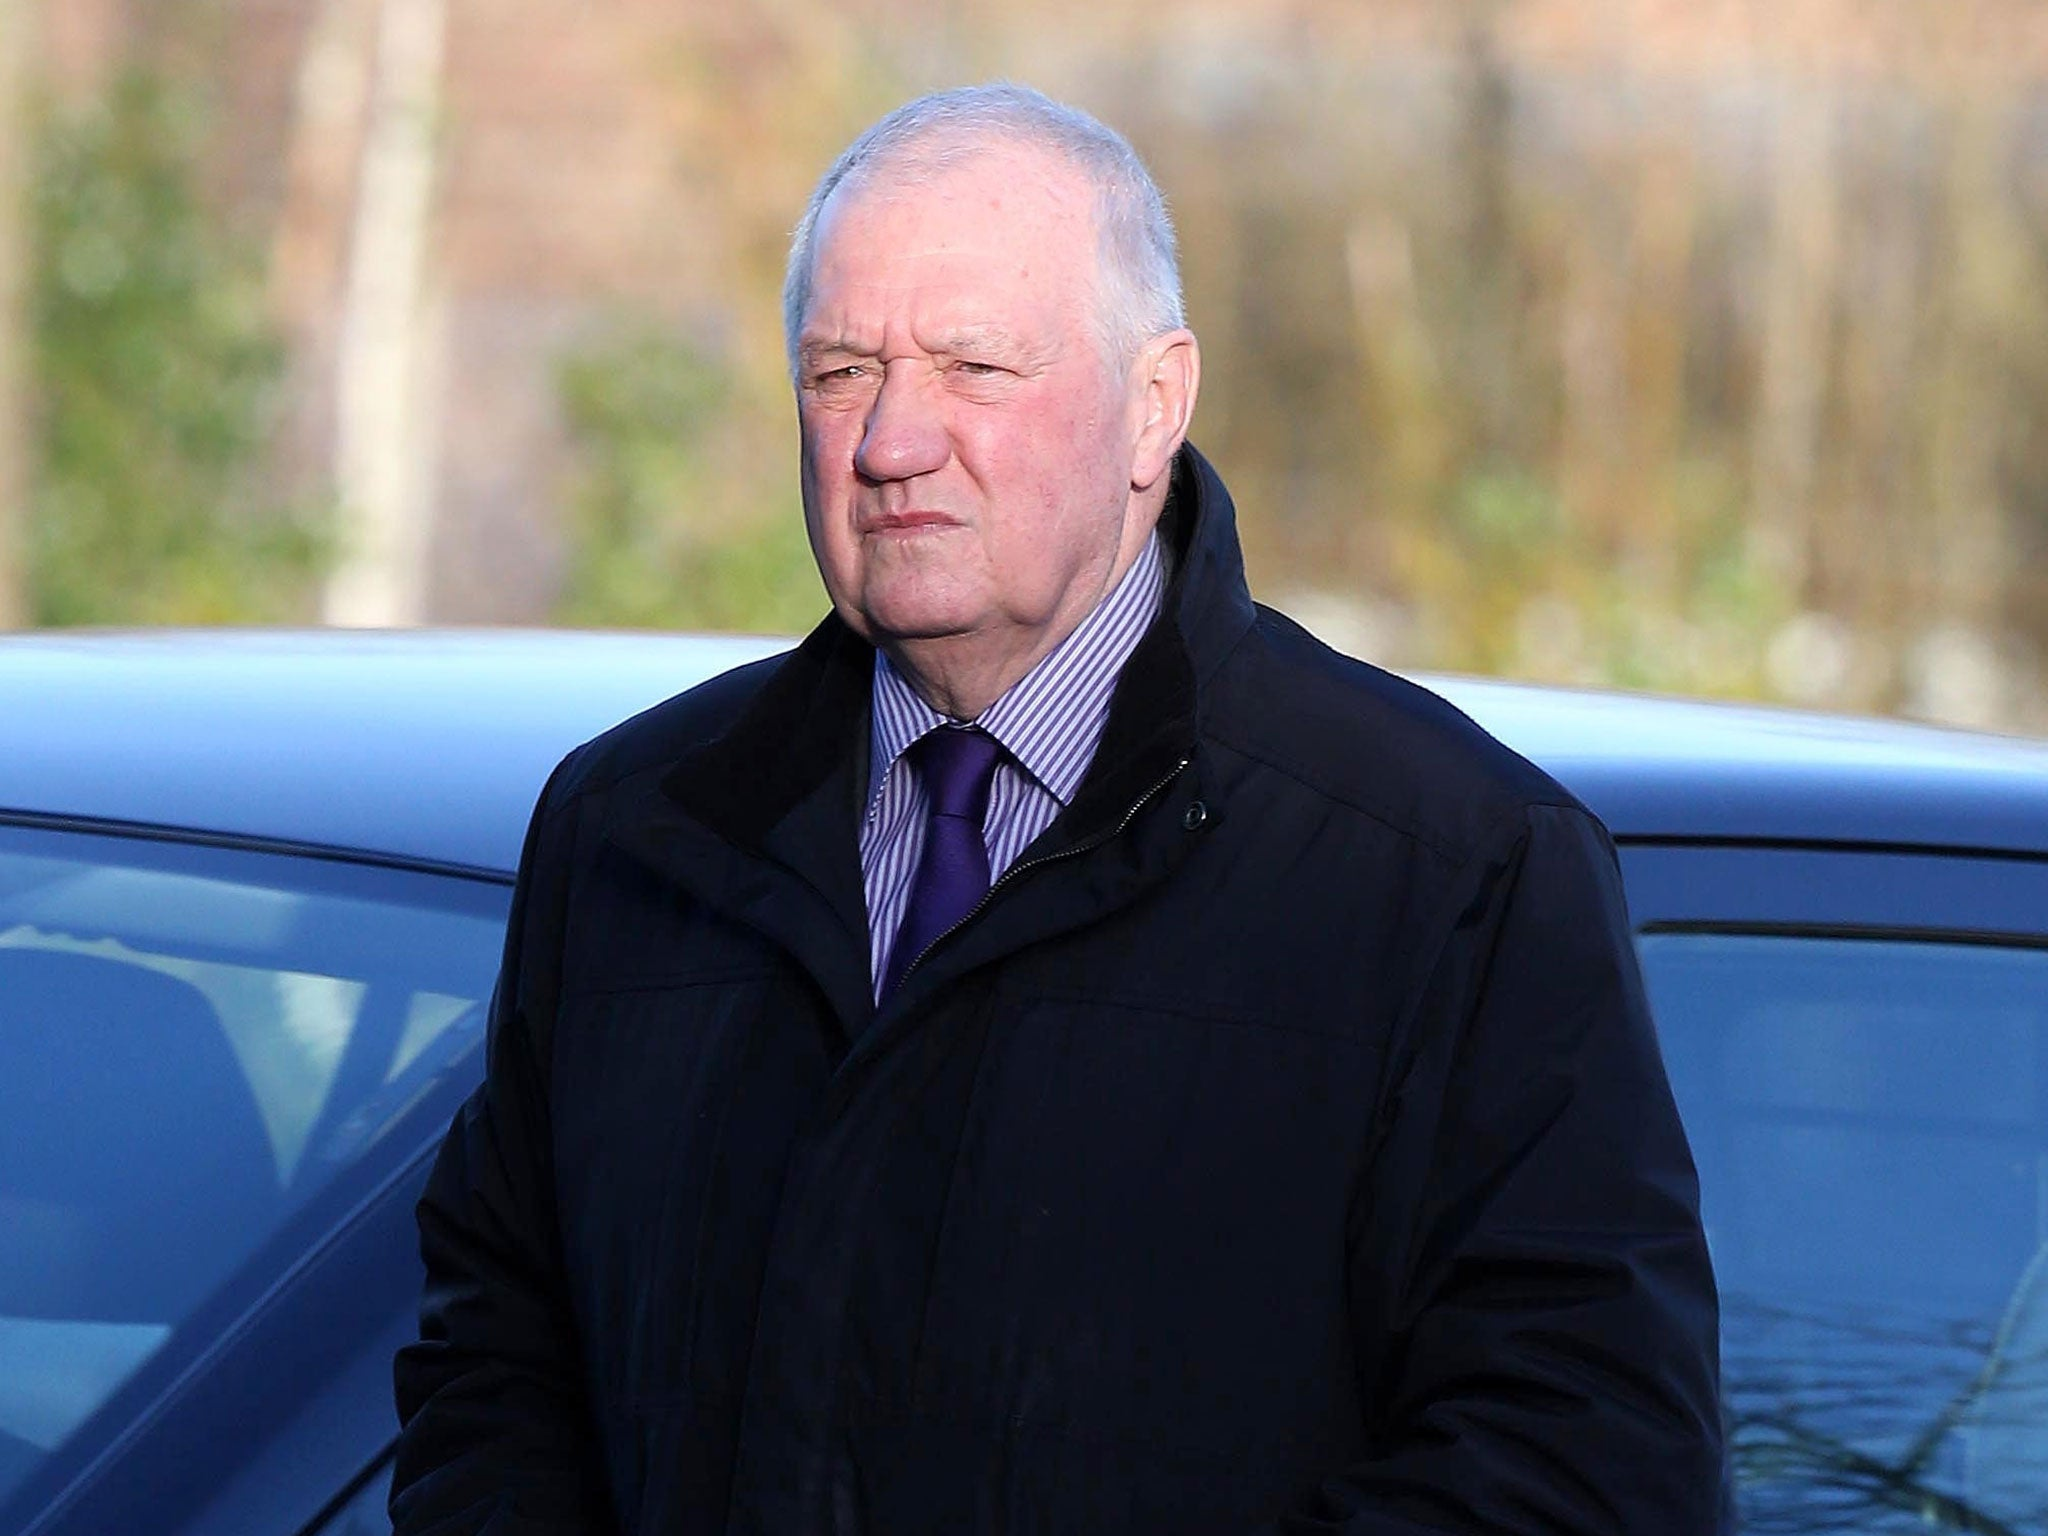 Hillsborough disaster: Police commander David Duckenfield pleads not guilty to manslaughter of 95 Liverpool fans